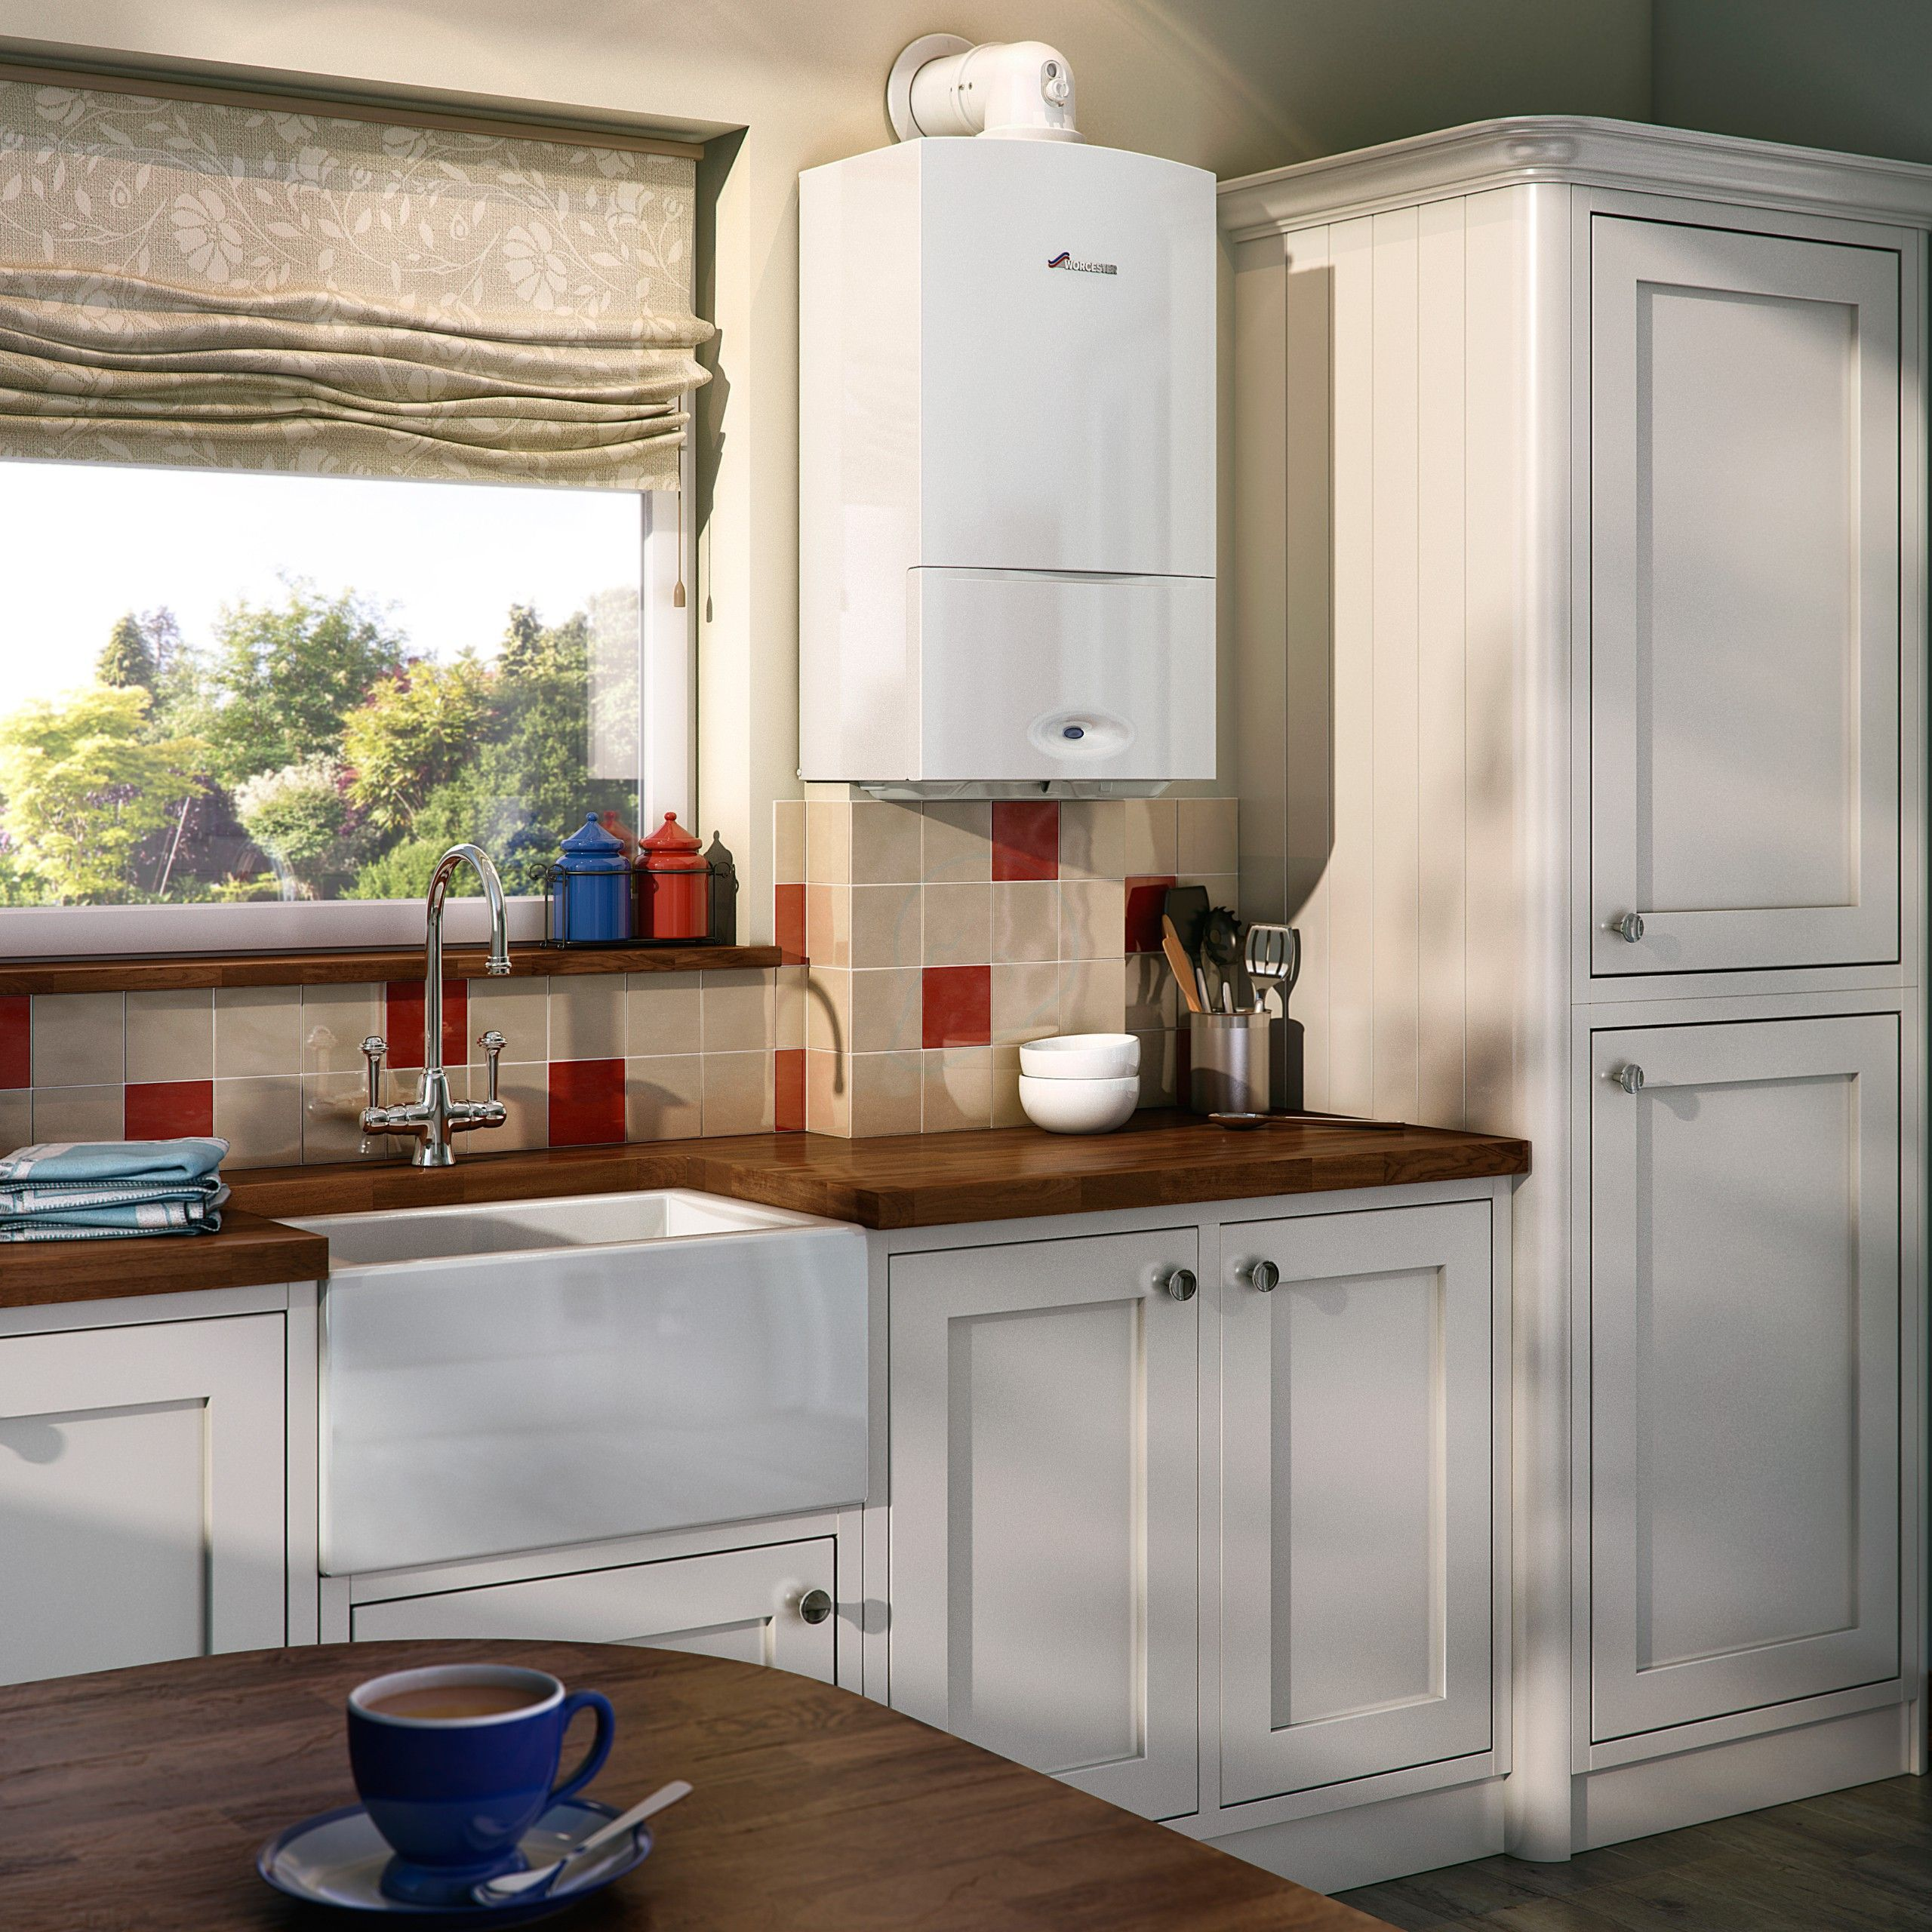 Contemporary Urban Kitchen St Albans: Worcester Greenstar 25si Compact Condensing Combi Boiler